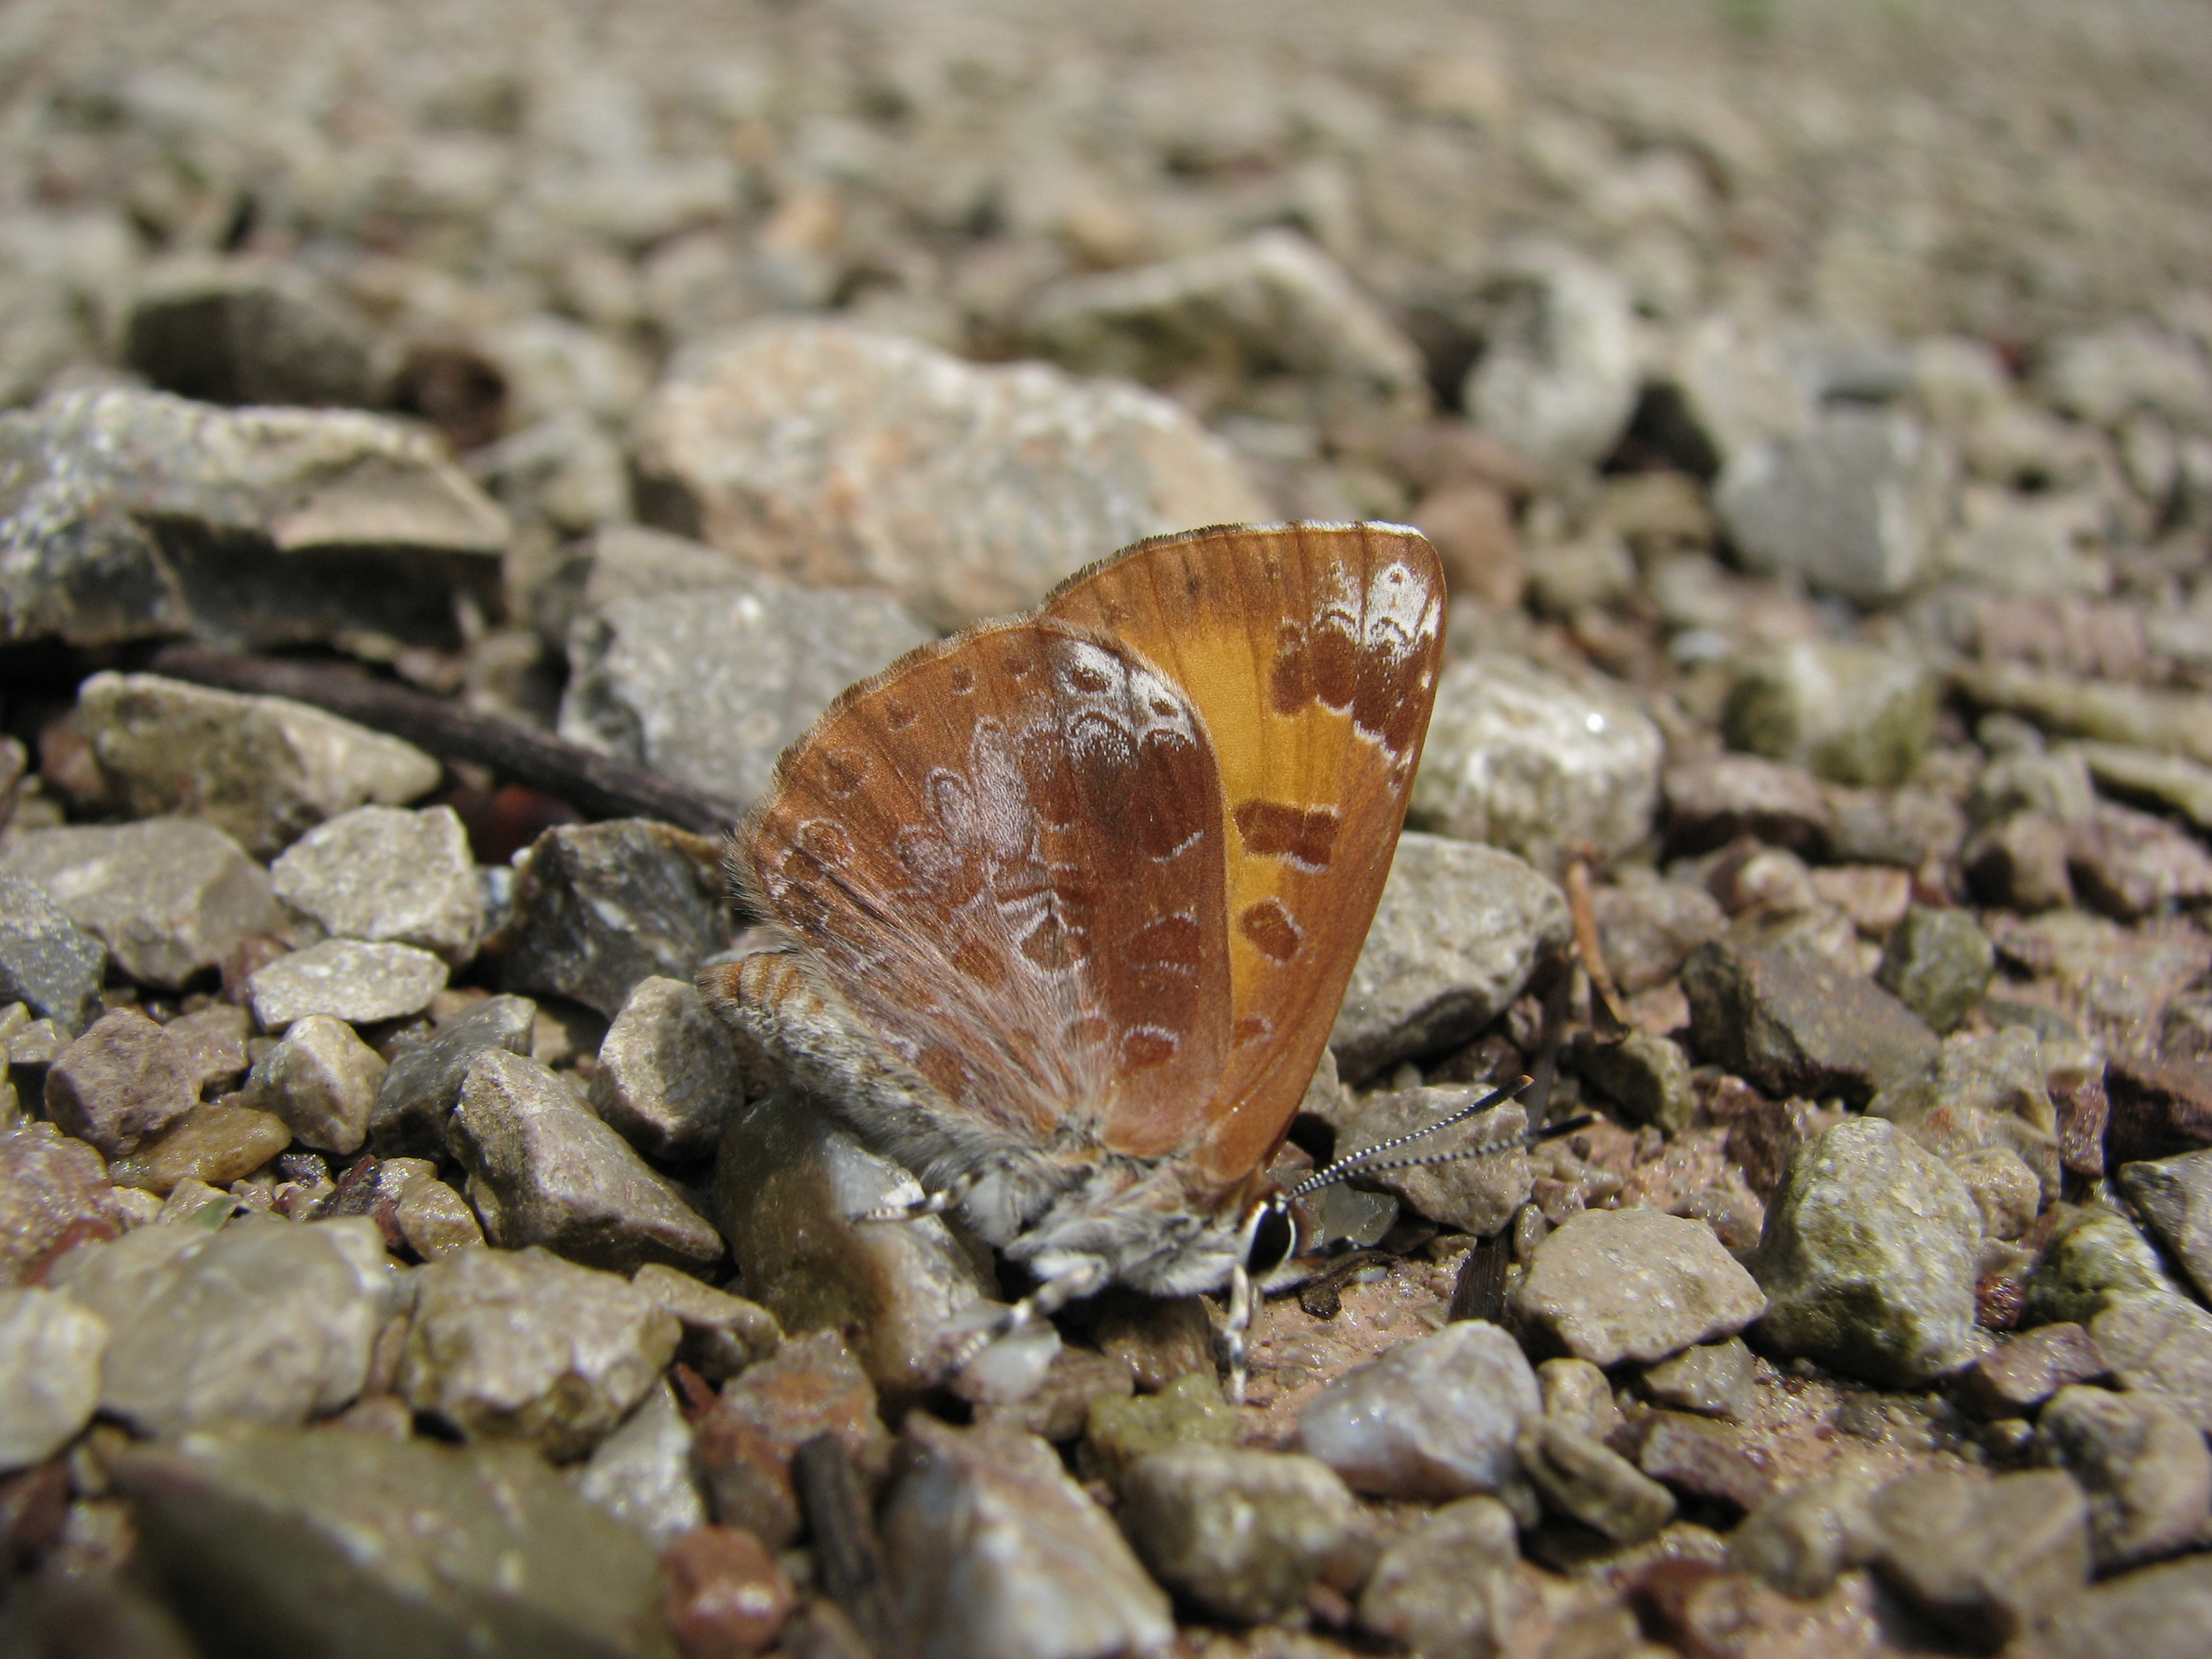 Harvester butterfly displaying 'normal' butterfly resting position.